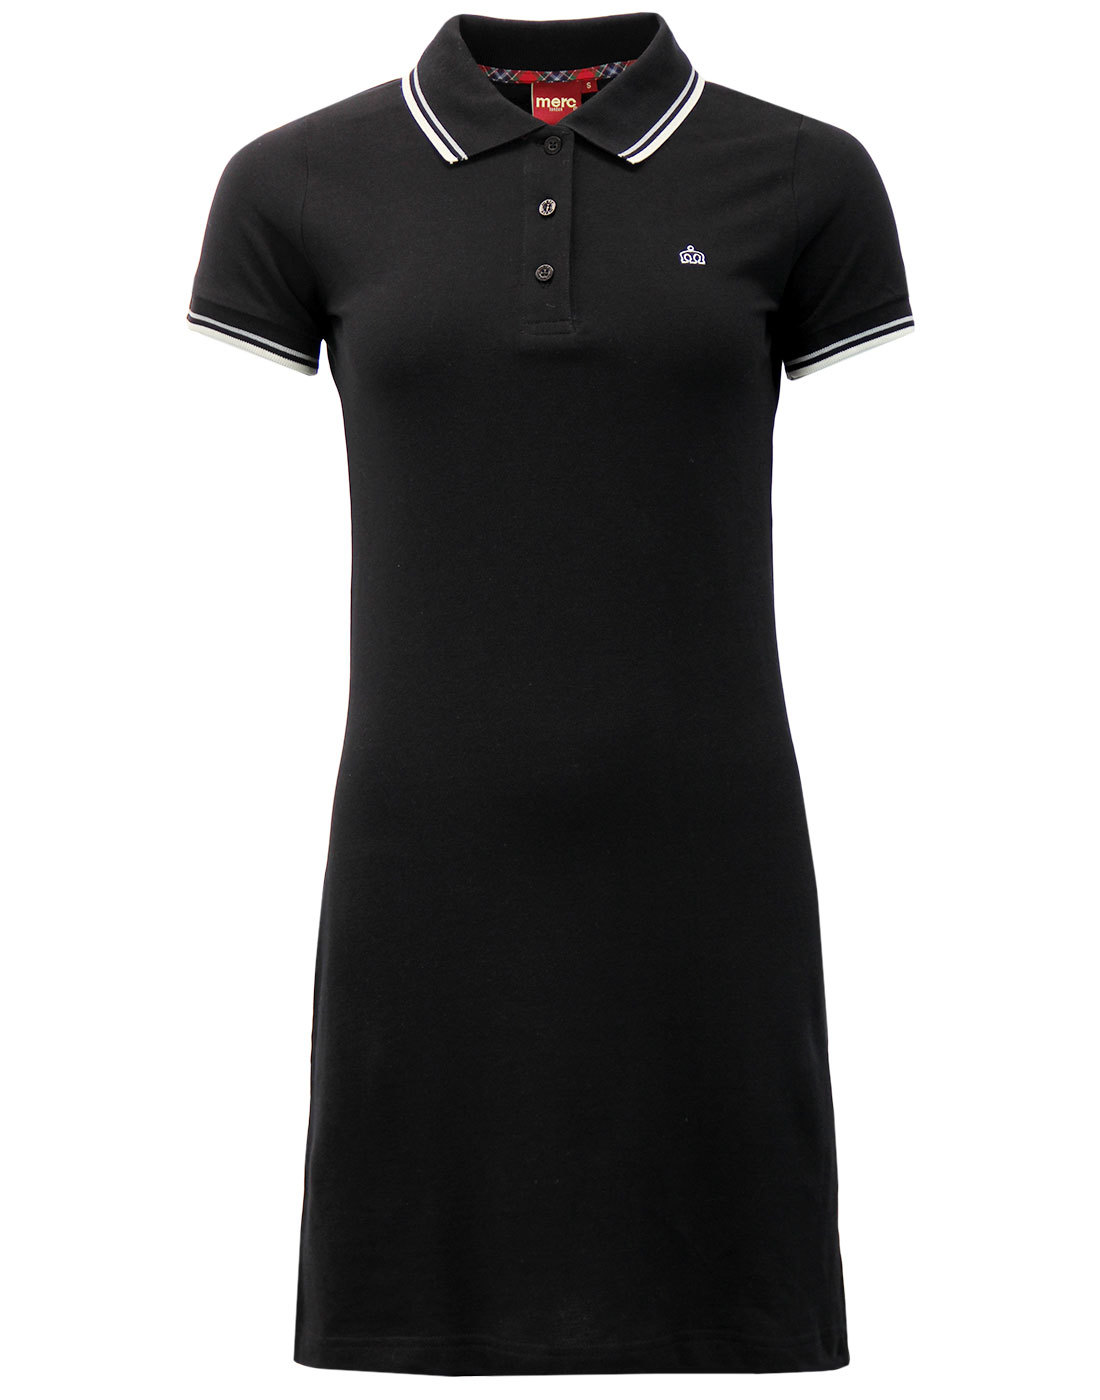 Kara MERC Retro Mod Tipped Pique Polo Dress BLACK